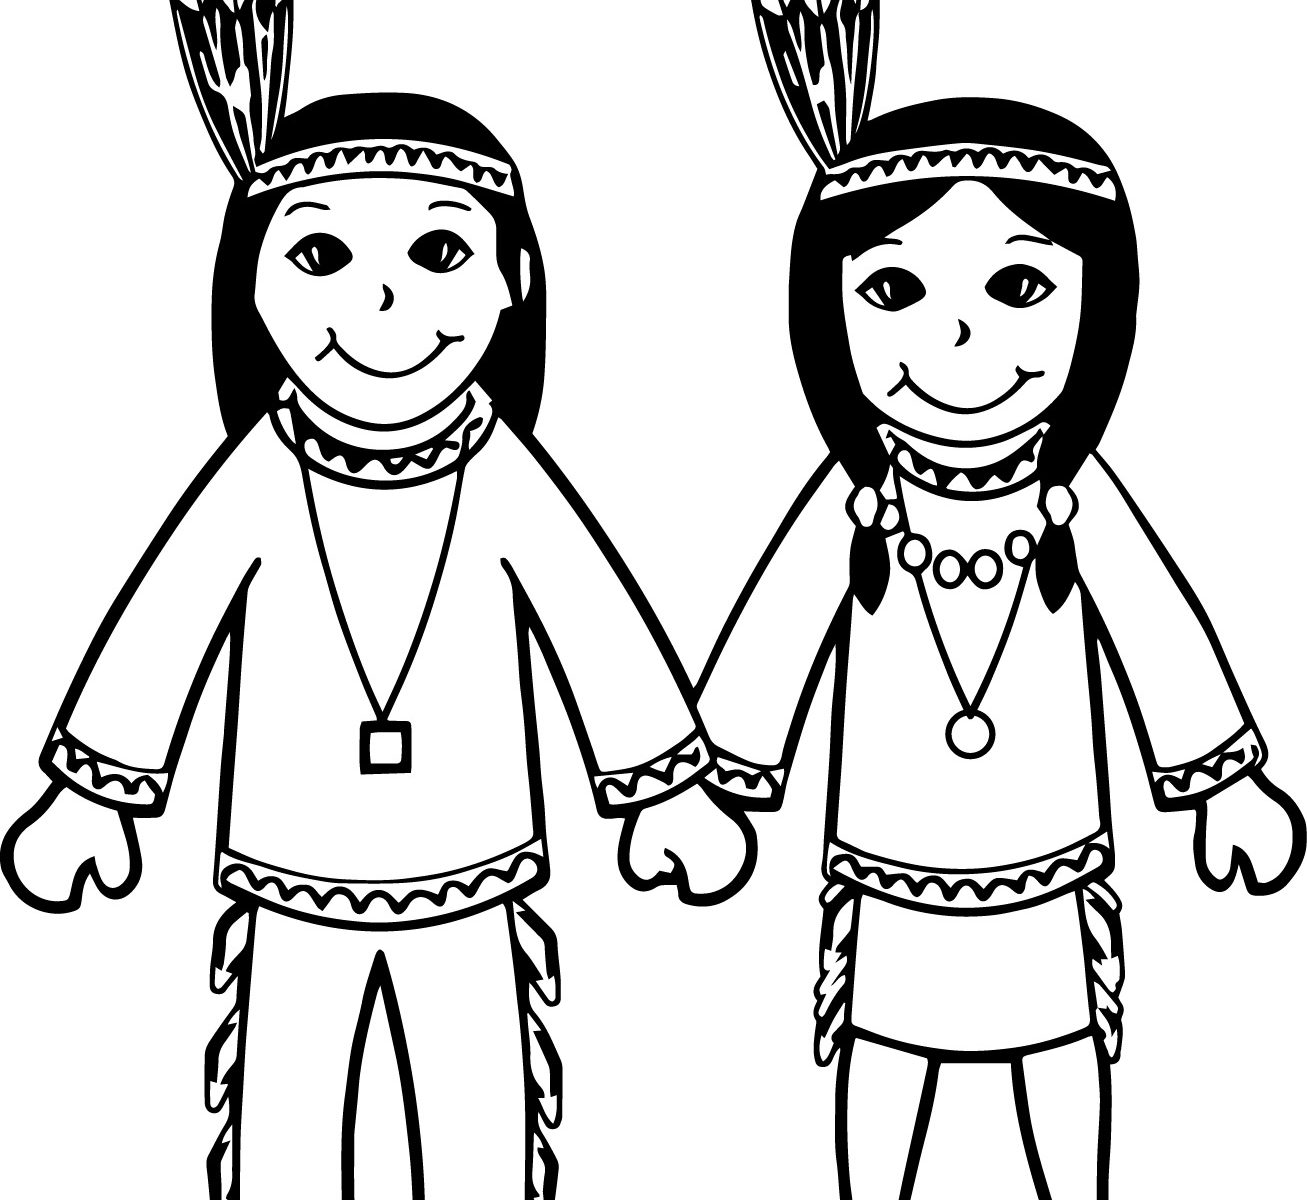 1307x1200 Indian Chief Boy Illustration Coloring Pages Page Free Printable